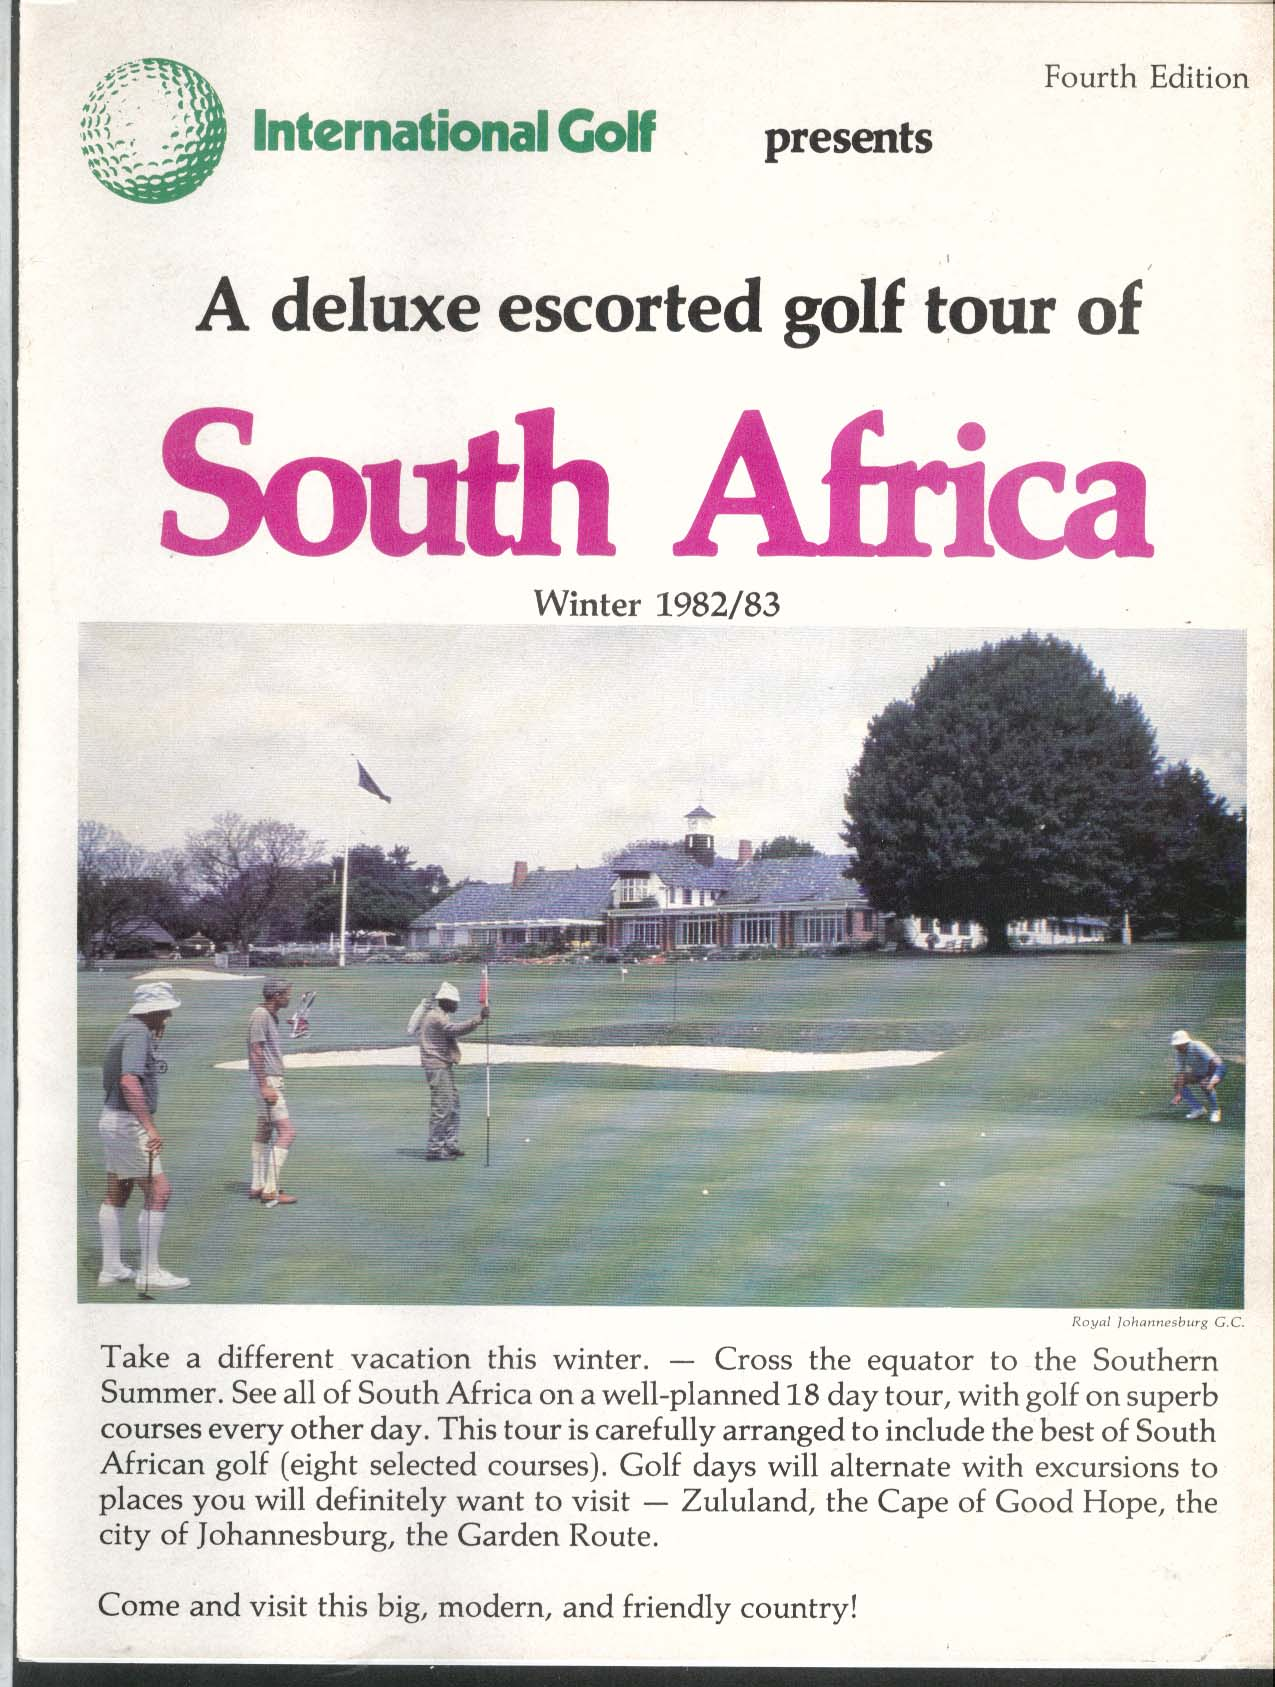 Image for International Golf deluxe escorted golf tour of South Africa Winter 1982 1983